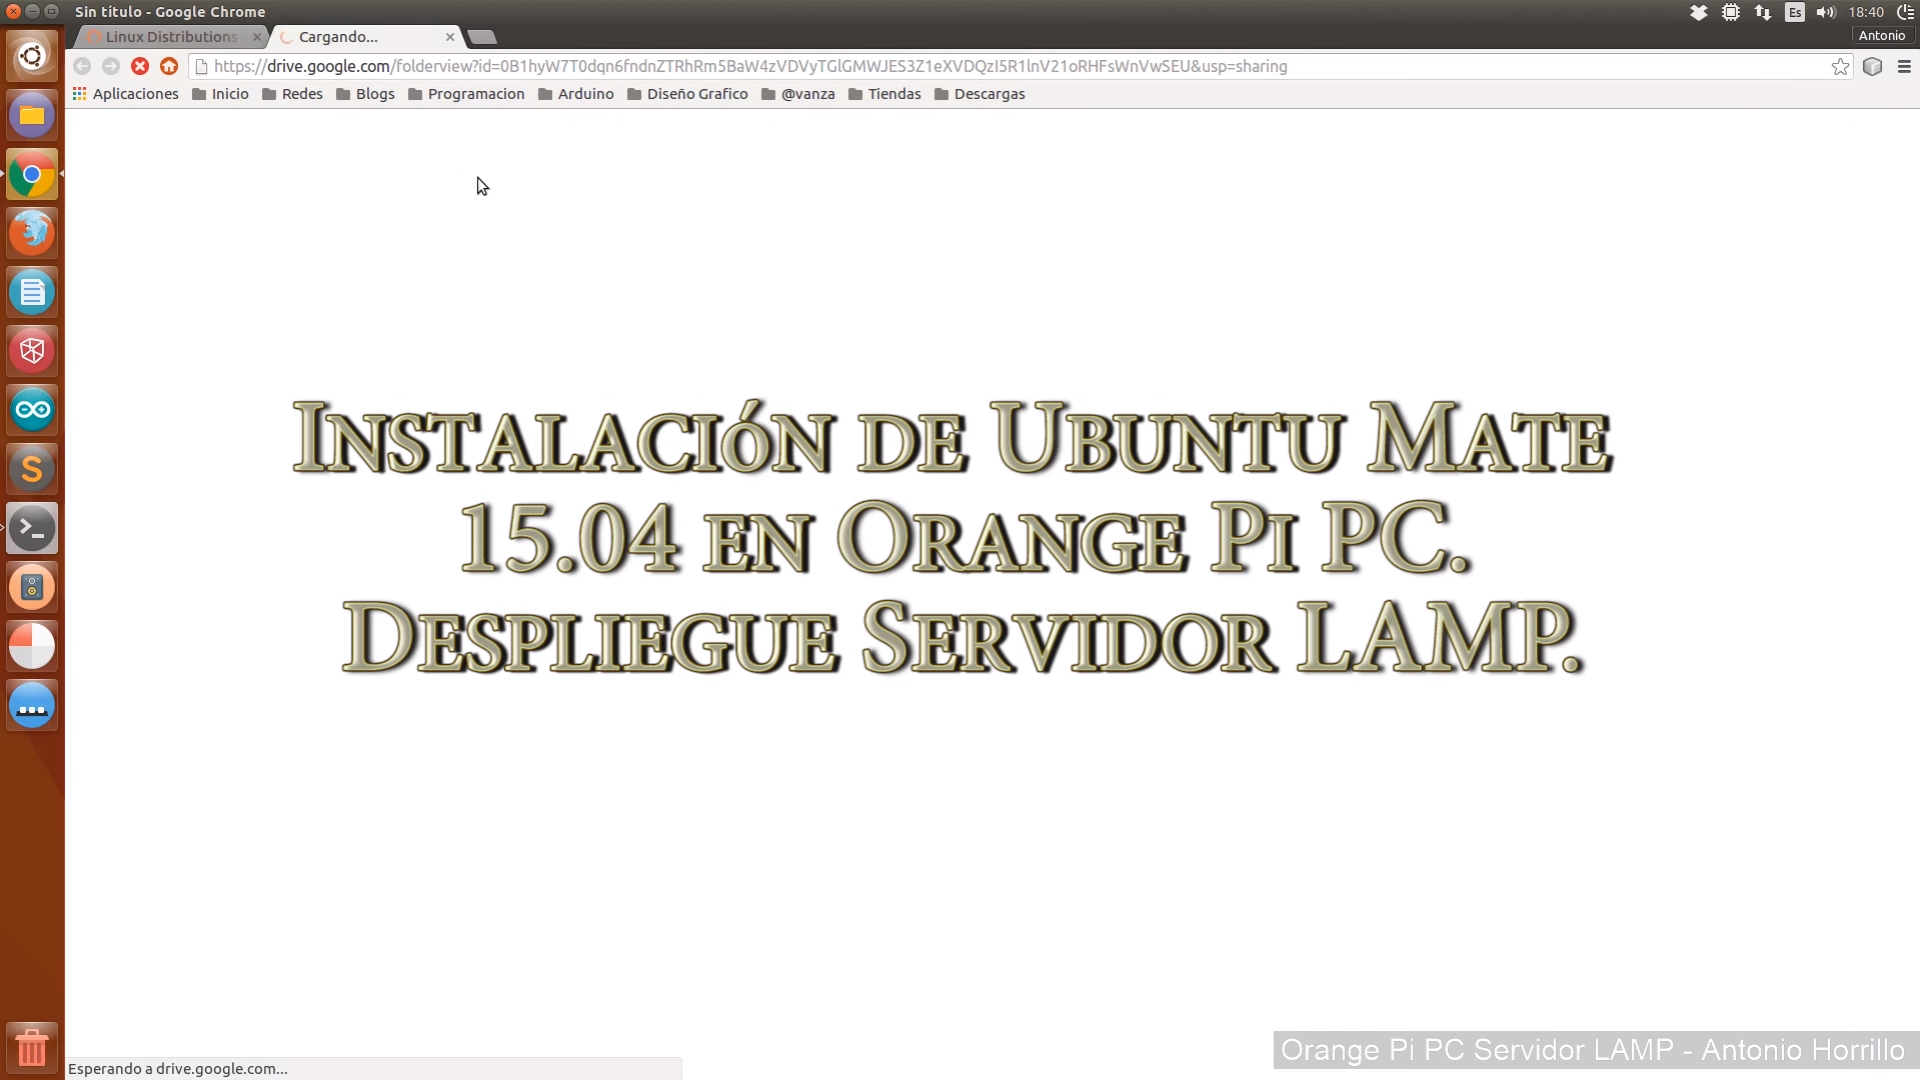 Instalación Ubuntu Mate 15.04 Orange Pi PC. Despliegue servidor LAMP.